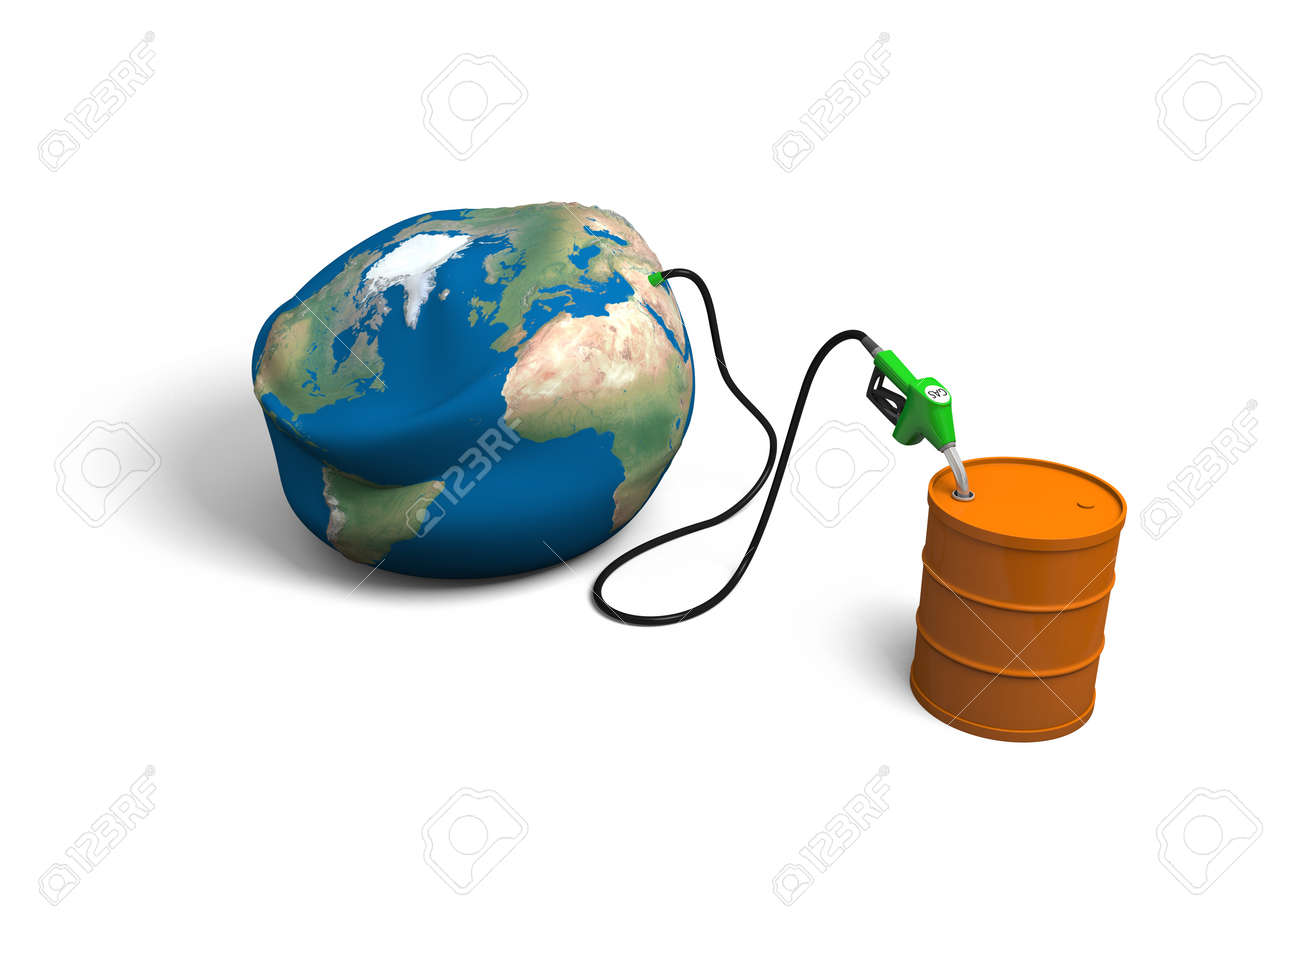 Concept of oil depletion with illustration of oil pump, pumping out oil from deflated Earth into petrol barrel, isolated on white background. Elements of this image furnished by NASA Stock Illustration - 17179663